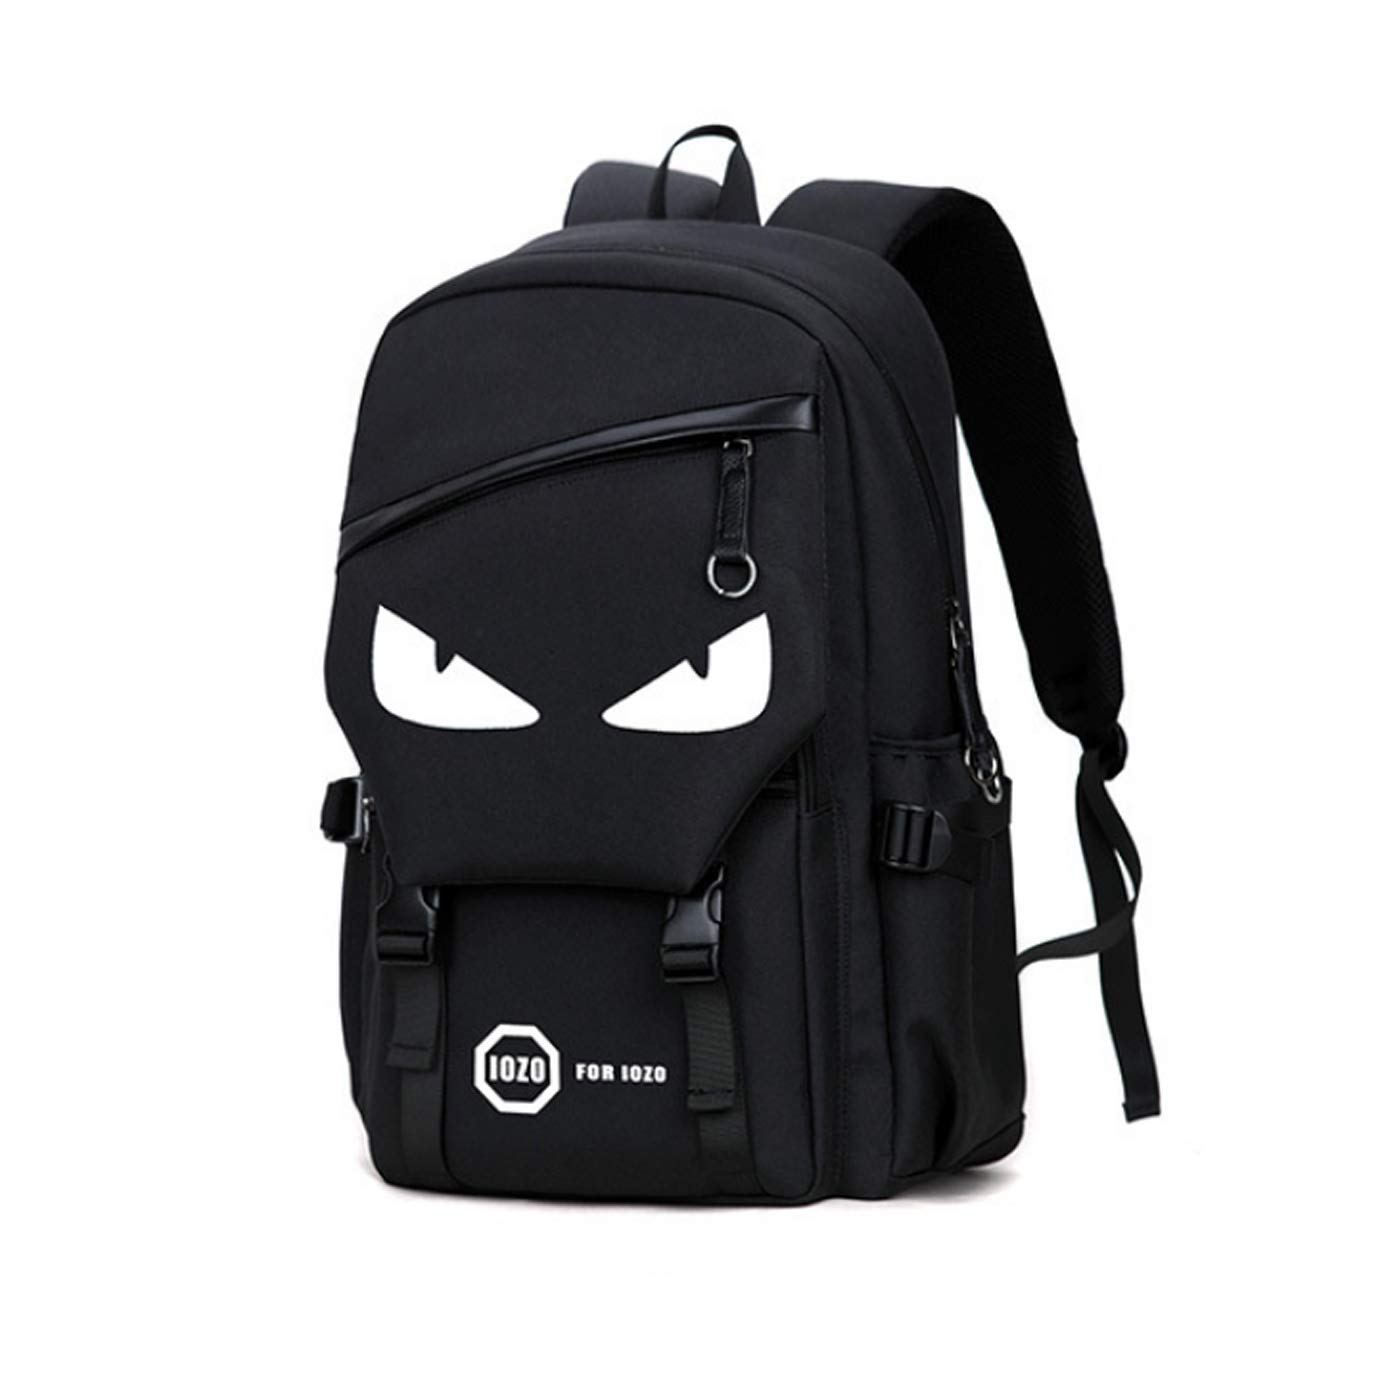 ULUIKY Luminous Backpack Canvas Cartoon Backpack USB Charging Port,Unisex Laptop Backpack Daypack Fashion School Backpack (A)